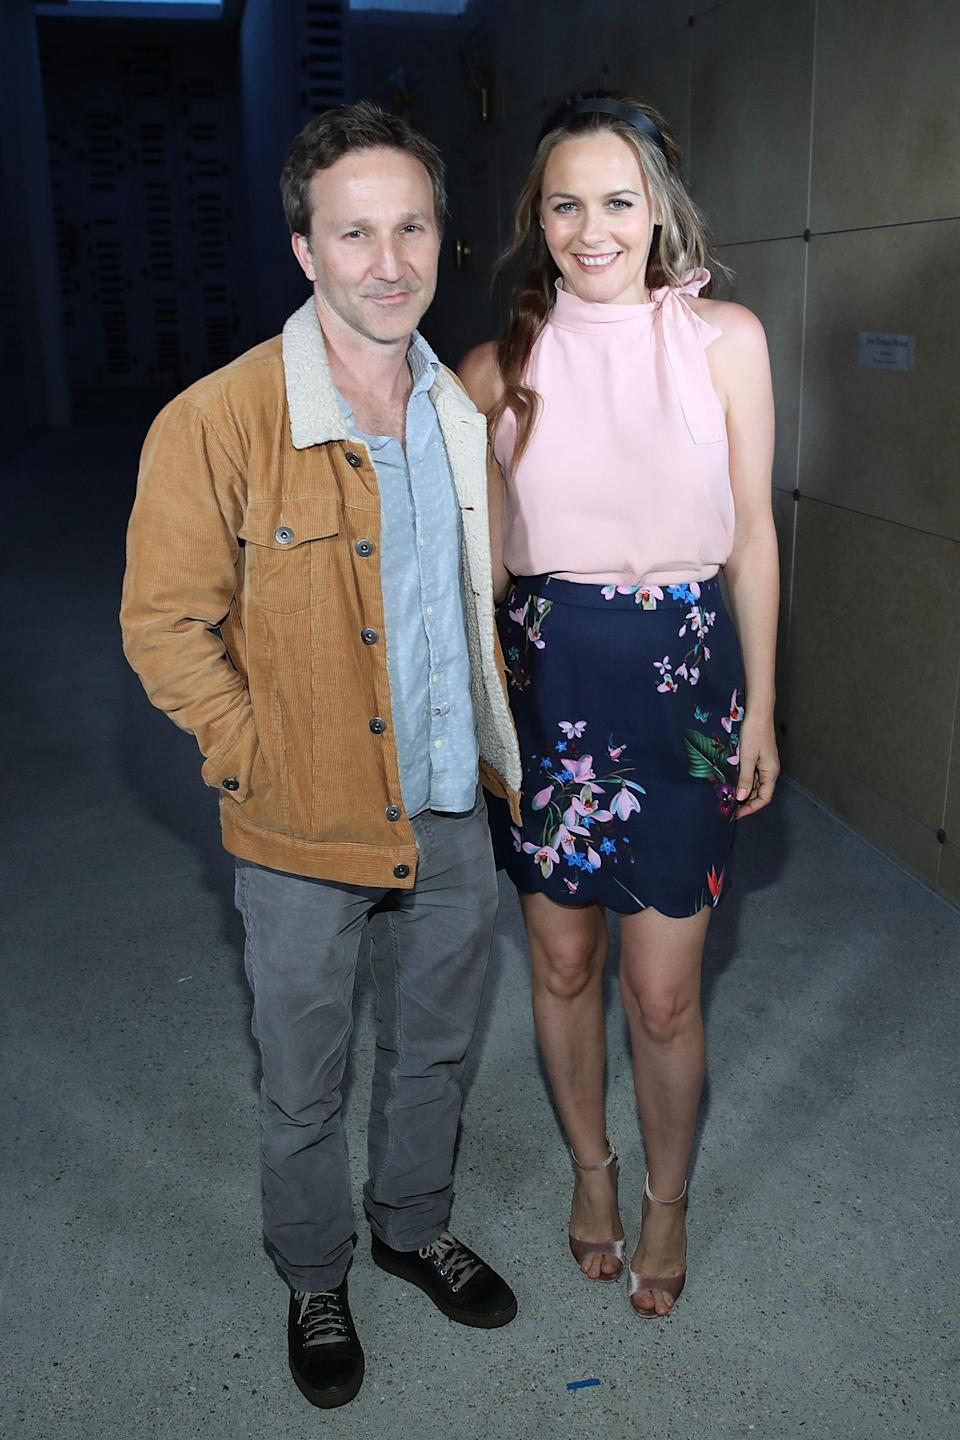 Image of Alicia Silverstone and Breckin Meyer